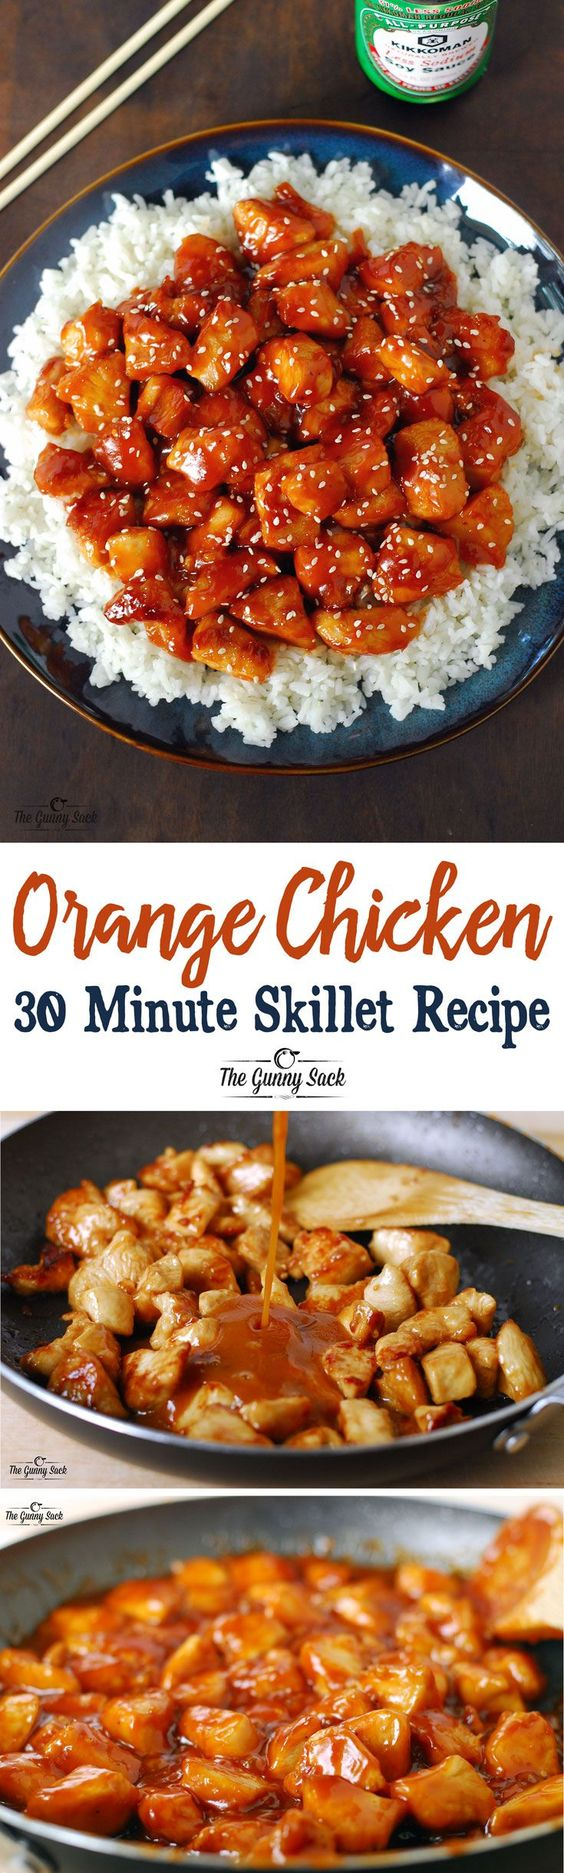 Orange Chicken 30 Minute Skillet Recipe via The Gunny Sack - An easy dinner idea that is family friendly! Homemade is always better than takeout! - The BEST 30 Minute Meals Recipes - Easy, Quick and Delicious Family Friendly Lunch and Dinner Ideas